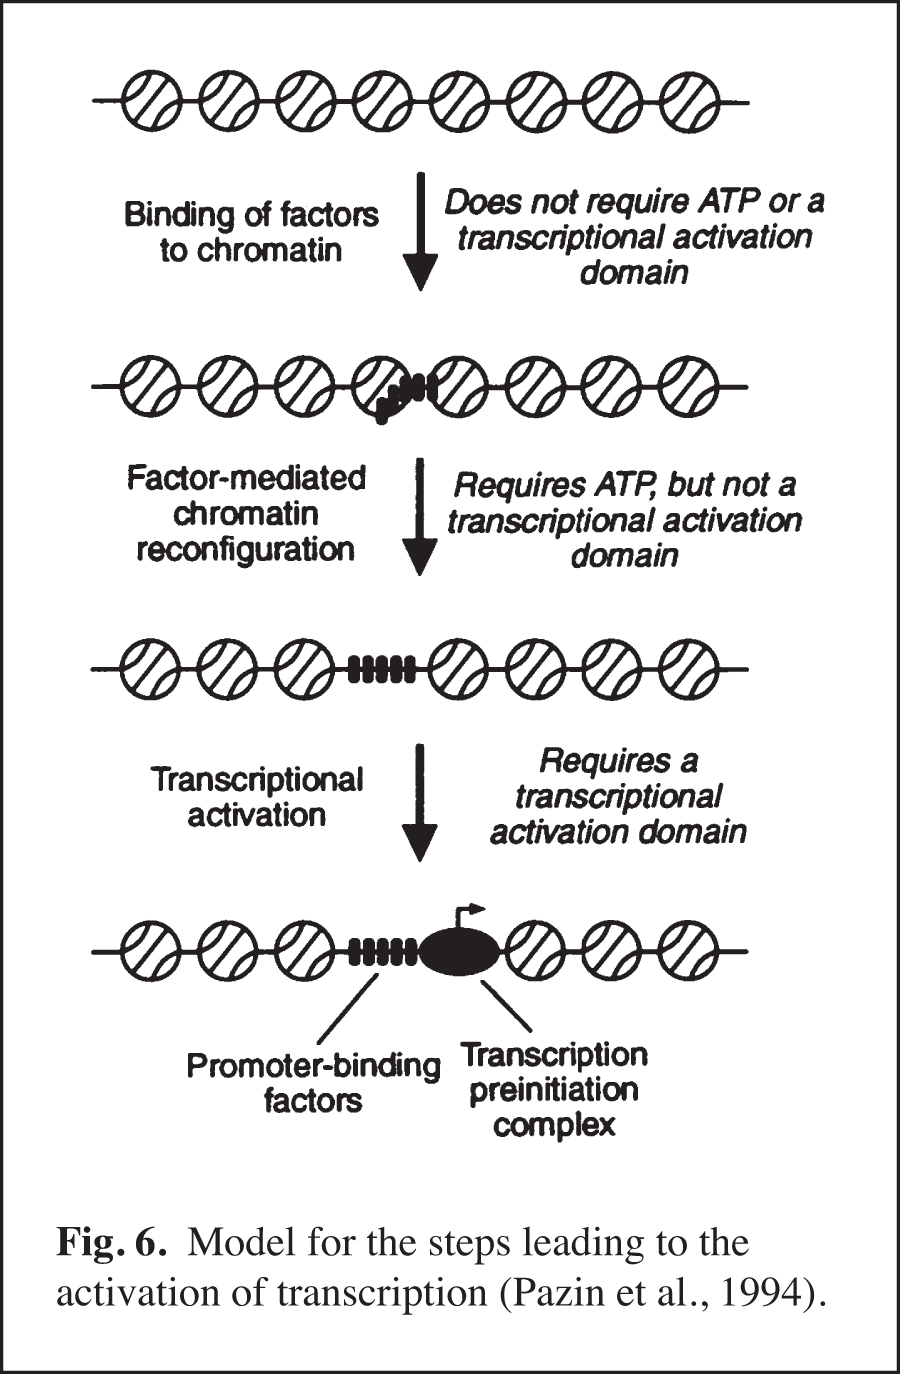 Model for steps leading to the activation of transcription